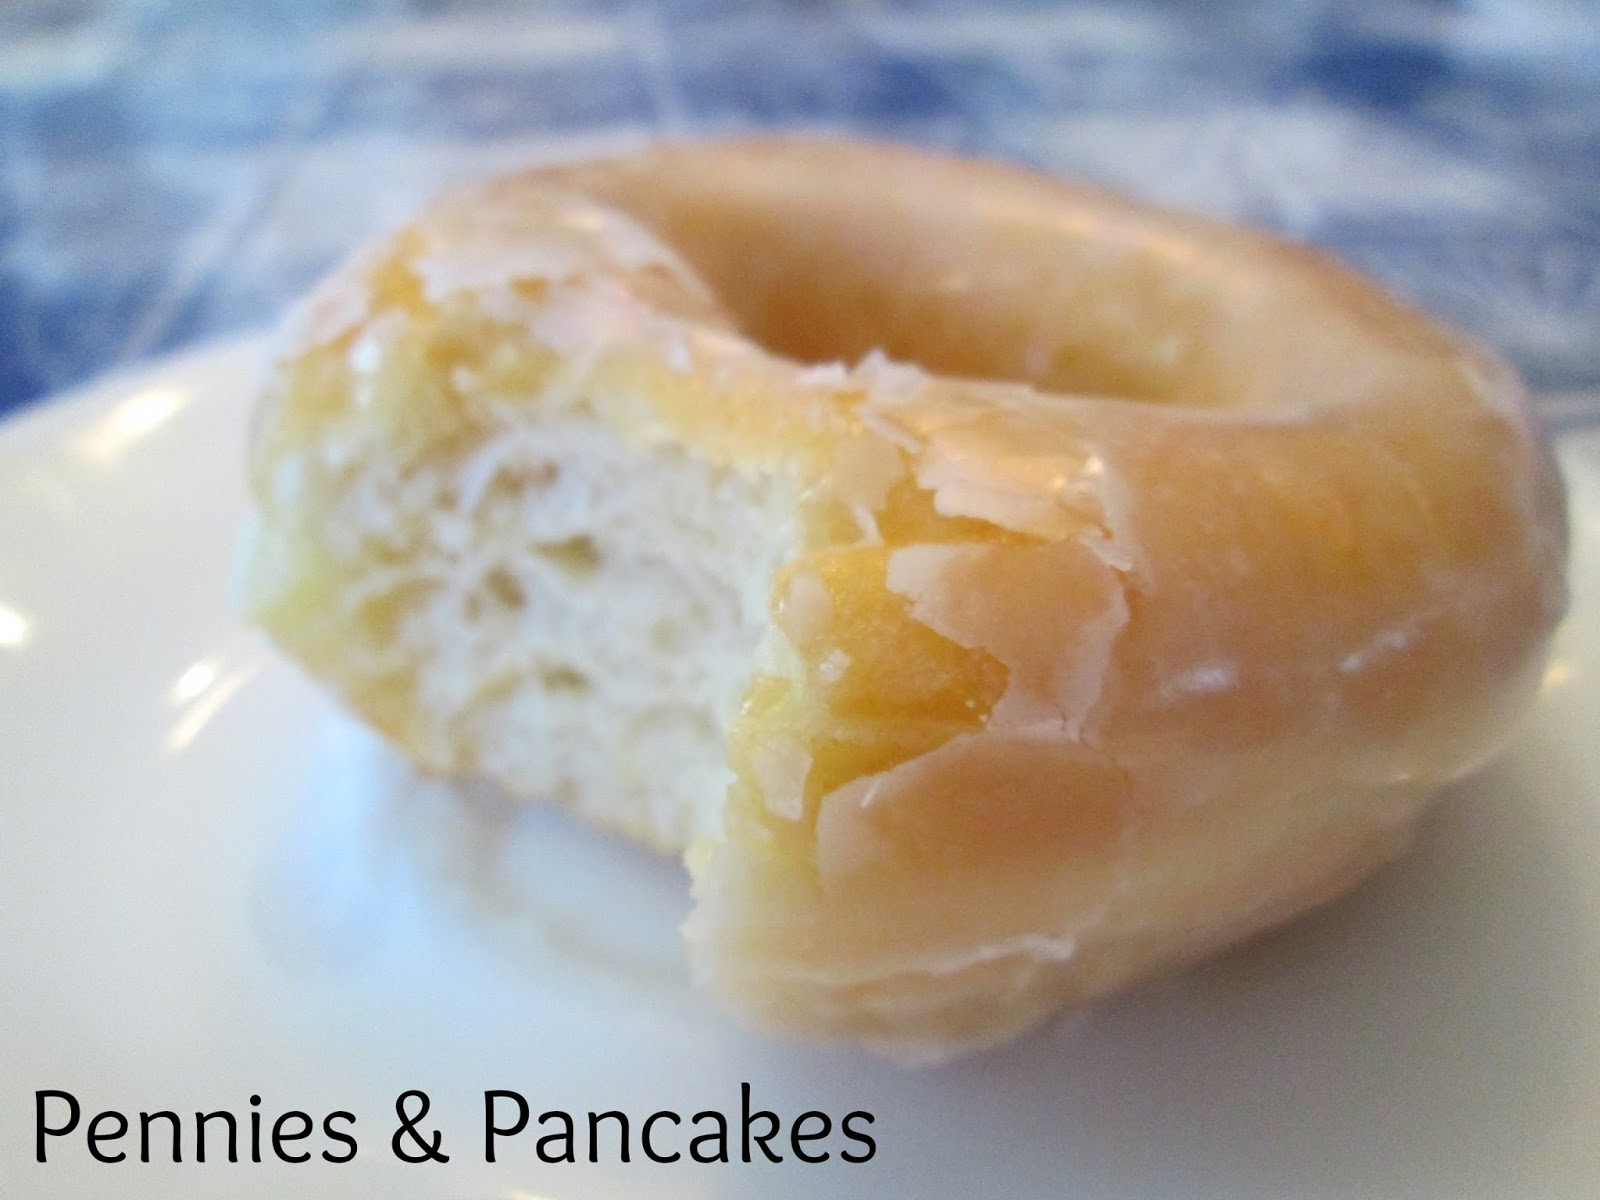 Pennies pancakes soft glazed donuts ccuart Choice Image